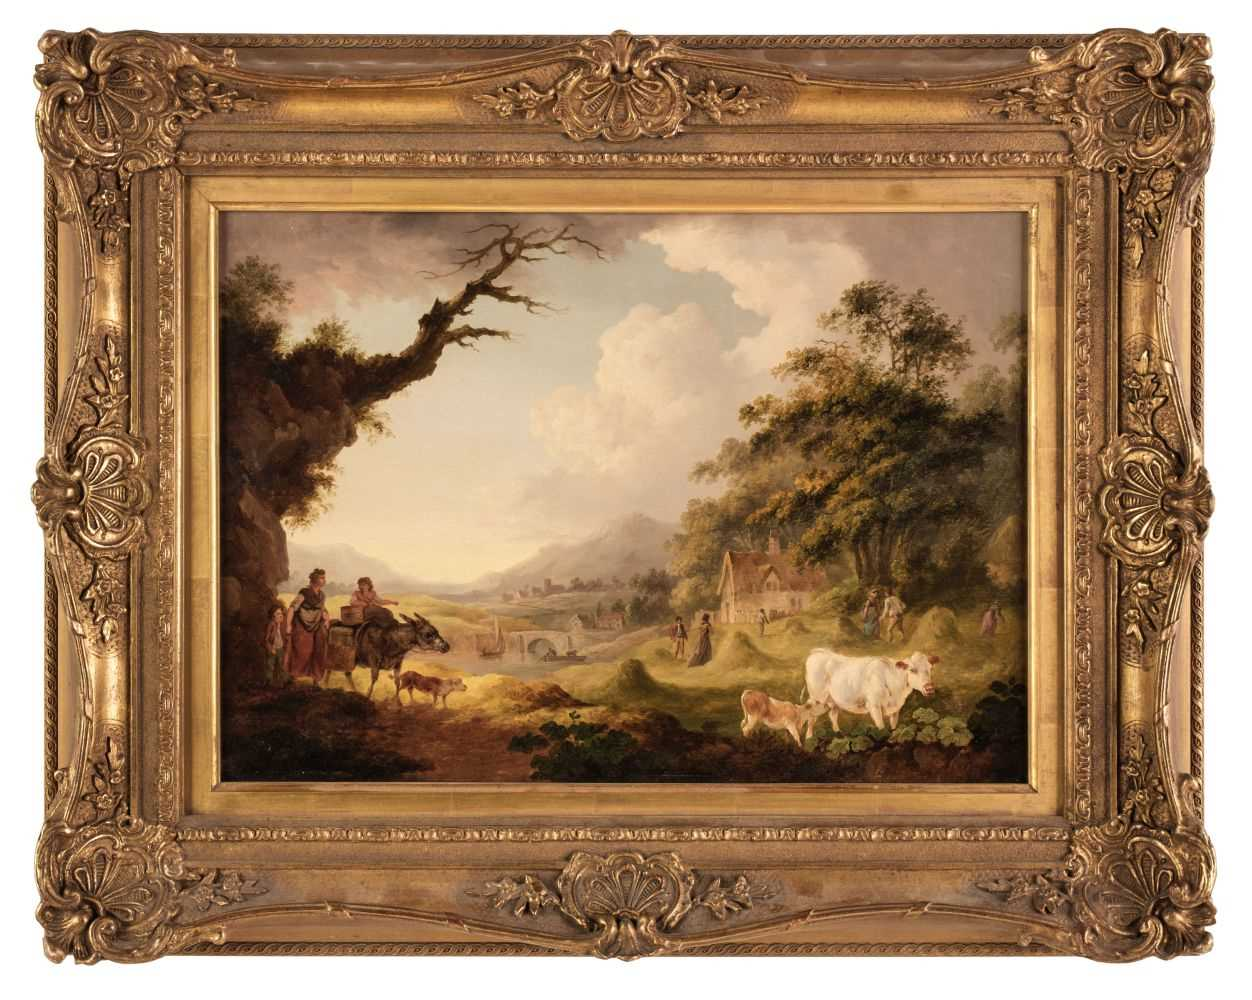 Lot 7 - Ibbetson (Julius Caesar) Figures and donkey in extensive landscape,  oil on panel